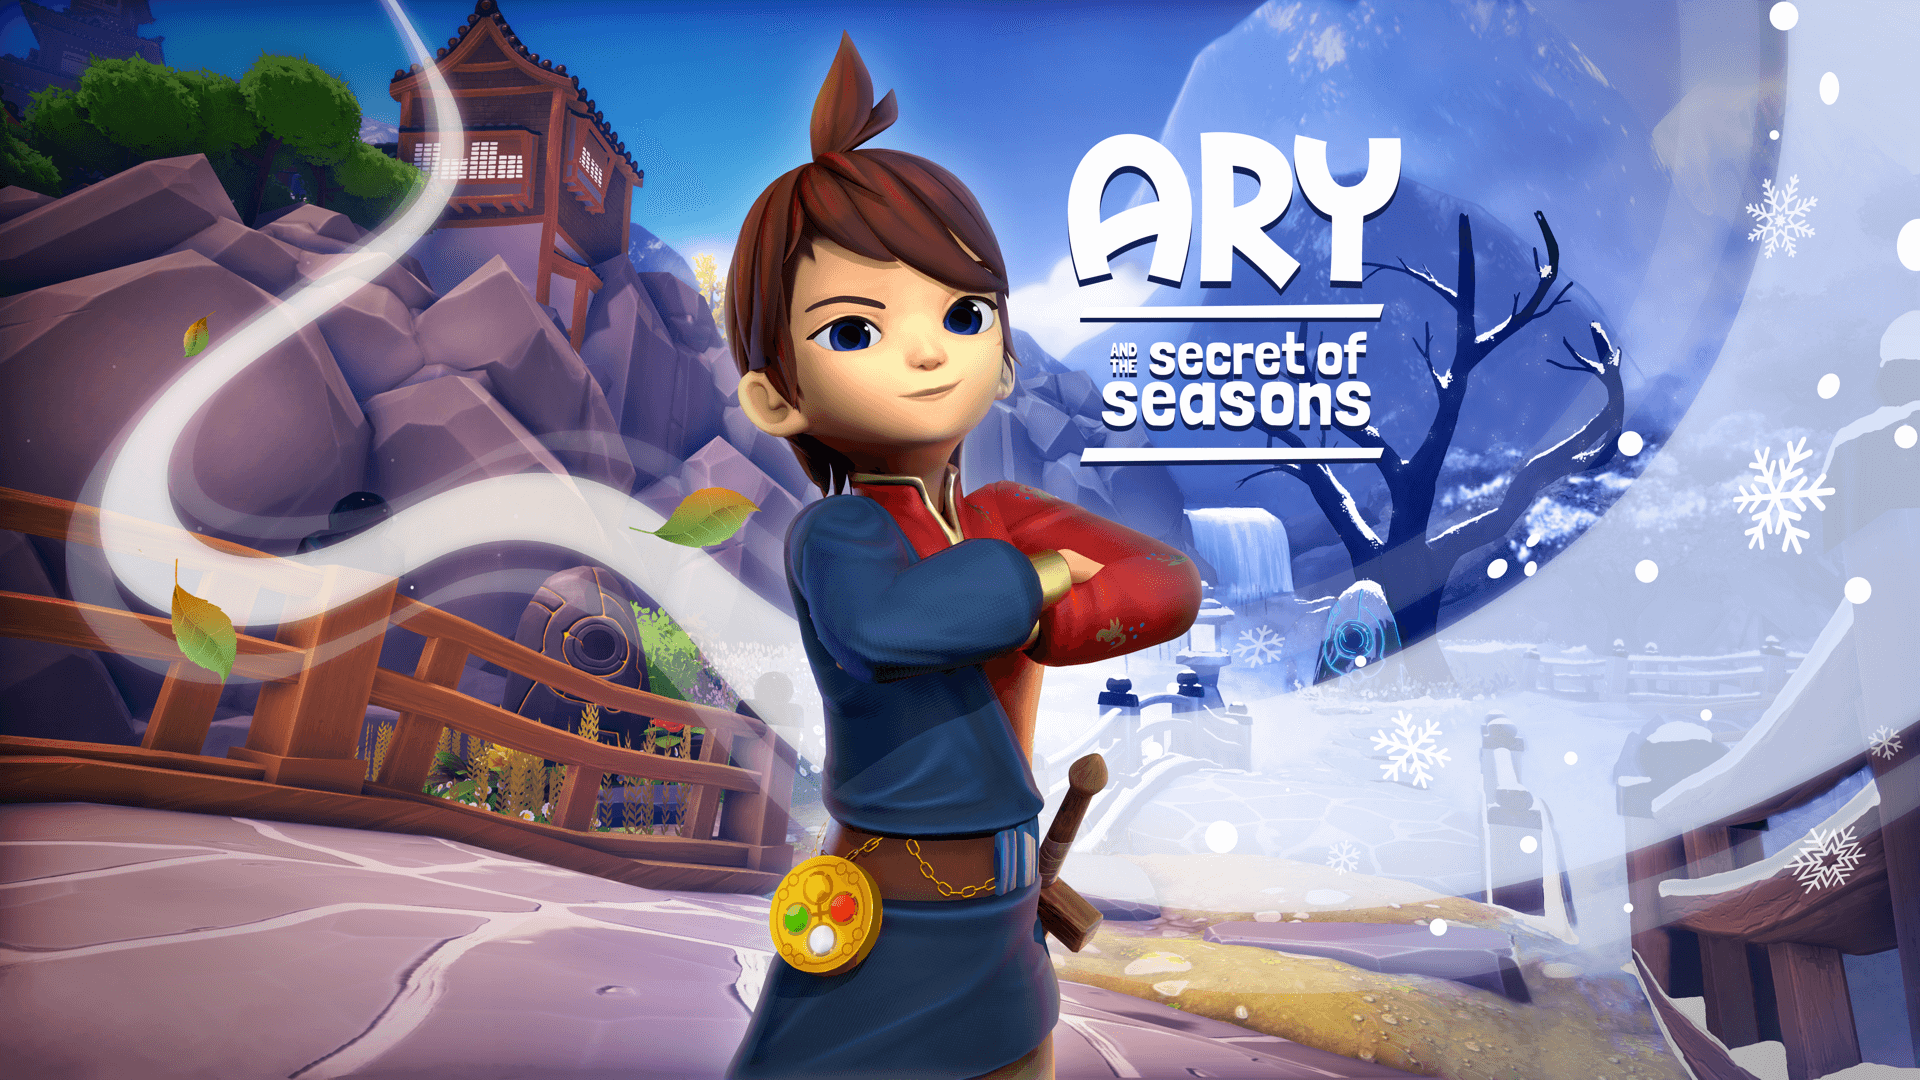 Ary and The Secret of Seasons Arrives This Summer